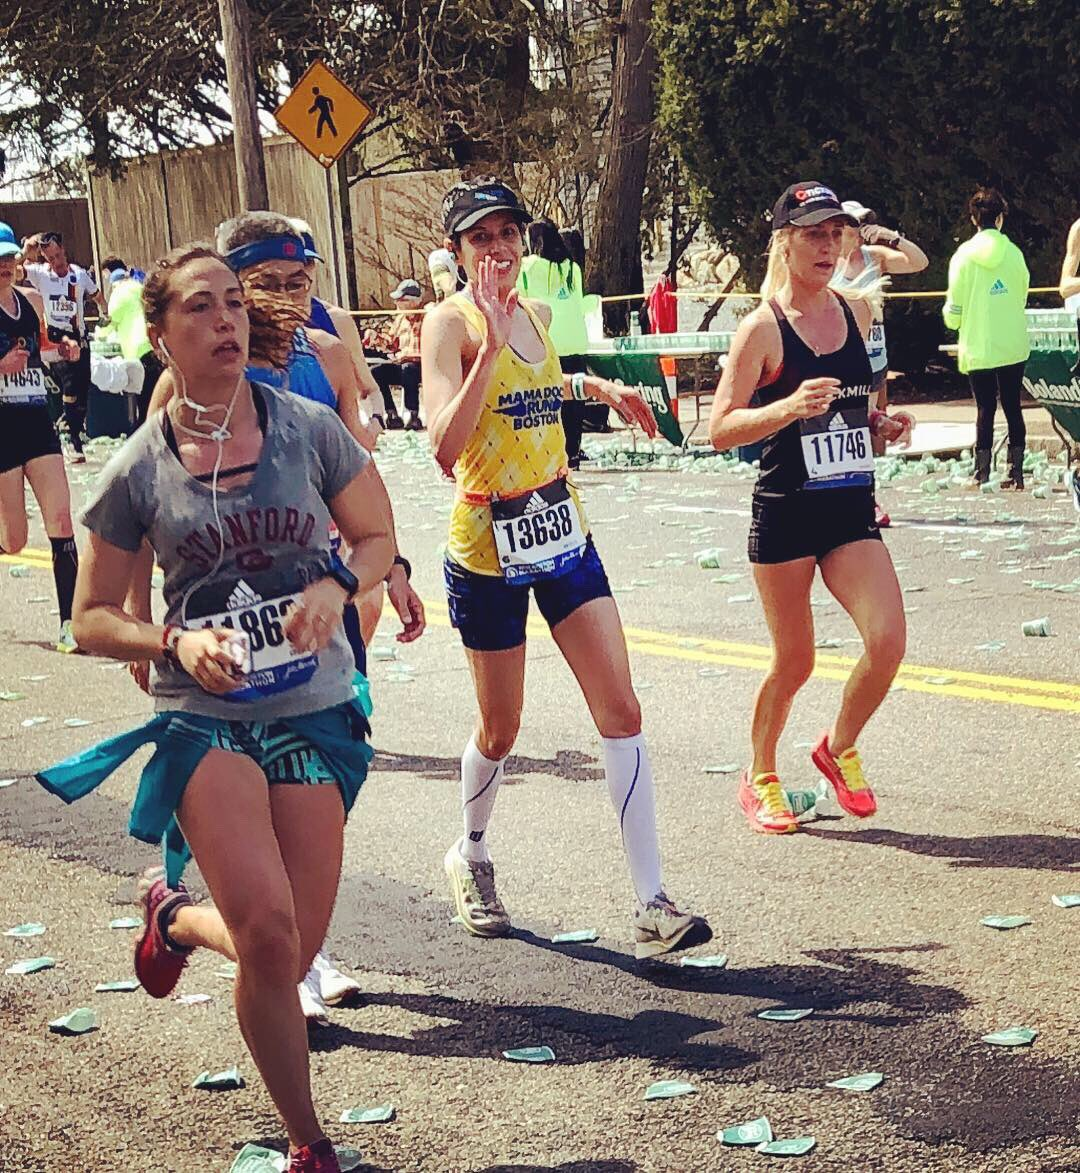 """I had this little race yesterday... and it was epic.  Not in the way of finishing times, but of appreciation for what my body can do after injuries and in hard conditions on a tough course.   """"Those who sow with tears will reap with songs of joy."""" Psalm 126:5 #BostonStrong <br>http://pic.twitter.com/9MH2VT4WIW"""